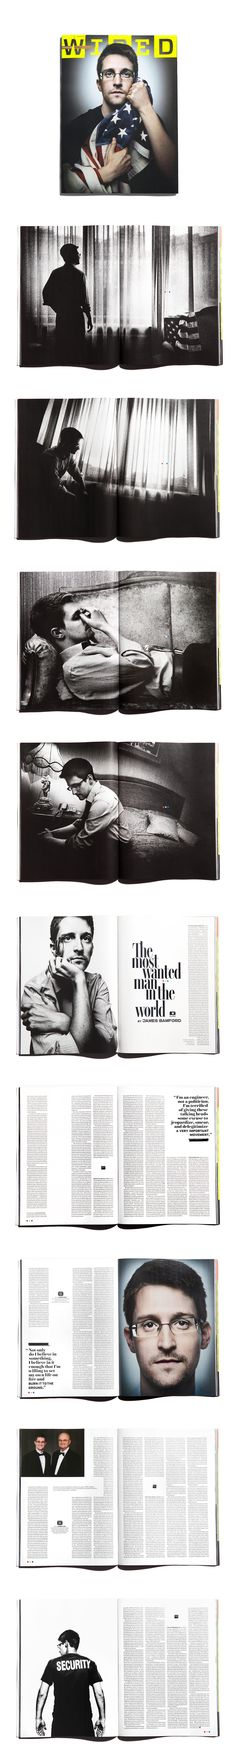 WIRED 22.09 Edward Snowden: The Most Wanted Man in the World   Editor in Chief: Scott Dadich   Creative Director: Billy Sorrentino   Director of Photography: Patrick Witty   Photographer: Platon